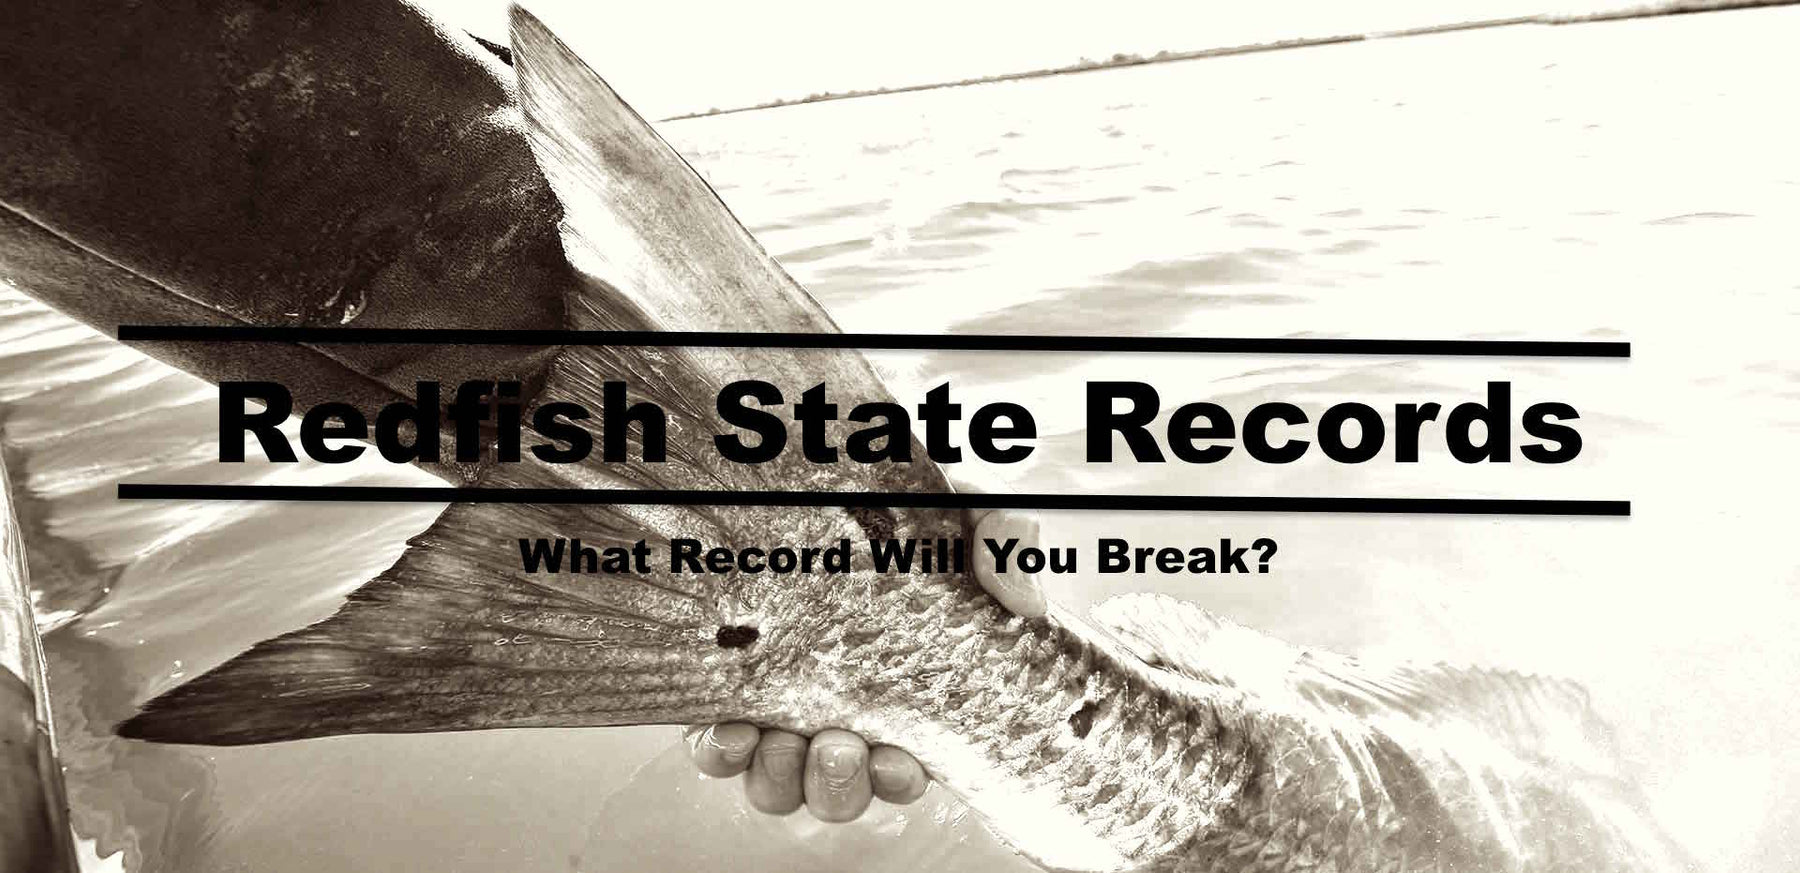 Redfish State Records On Hunting and Fishing Depot